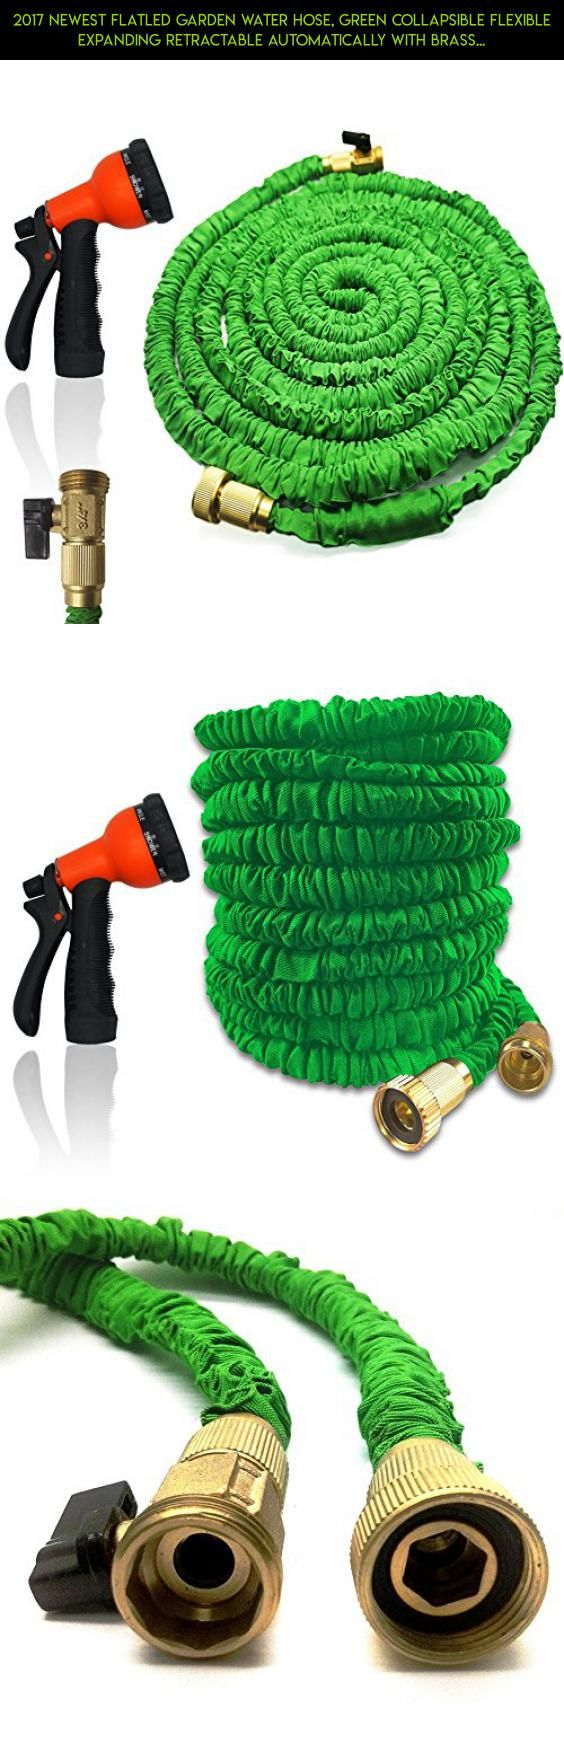 2017 Newest FlatLED Garden Water Hose, Green Collapsible Flexible Expanding Retractable Automatically with Brass Connector and Spray Nozzle (50ft) #storage #camera #shopping #5 #products #plans #basket #kit #technology #racing #gadgets #parts #tech #drone #fpv